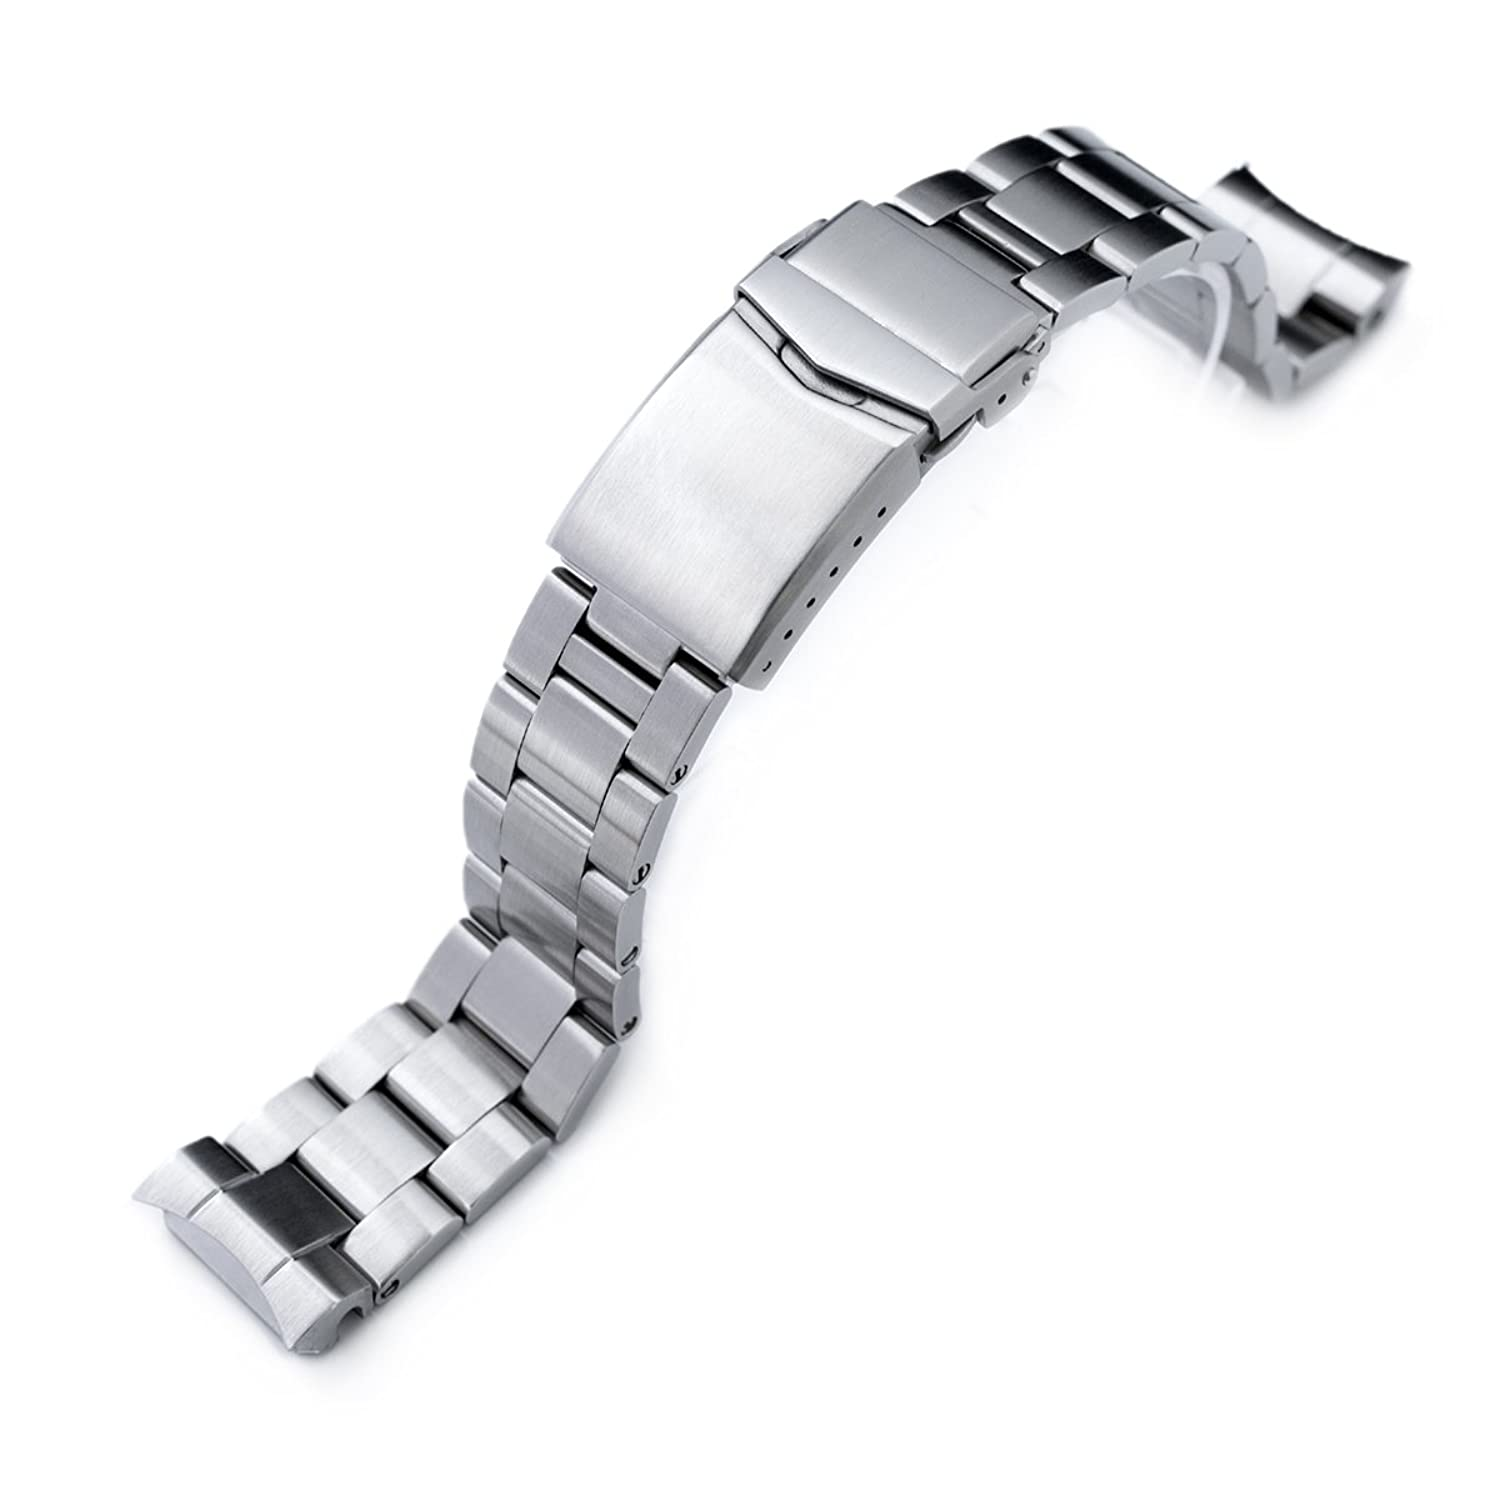 20 mmスーパーOyster Watch Band for Seiko mm300 Prospex Marinemaster sbdx001、v-clasp  B01N1J1S2M